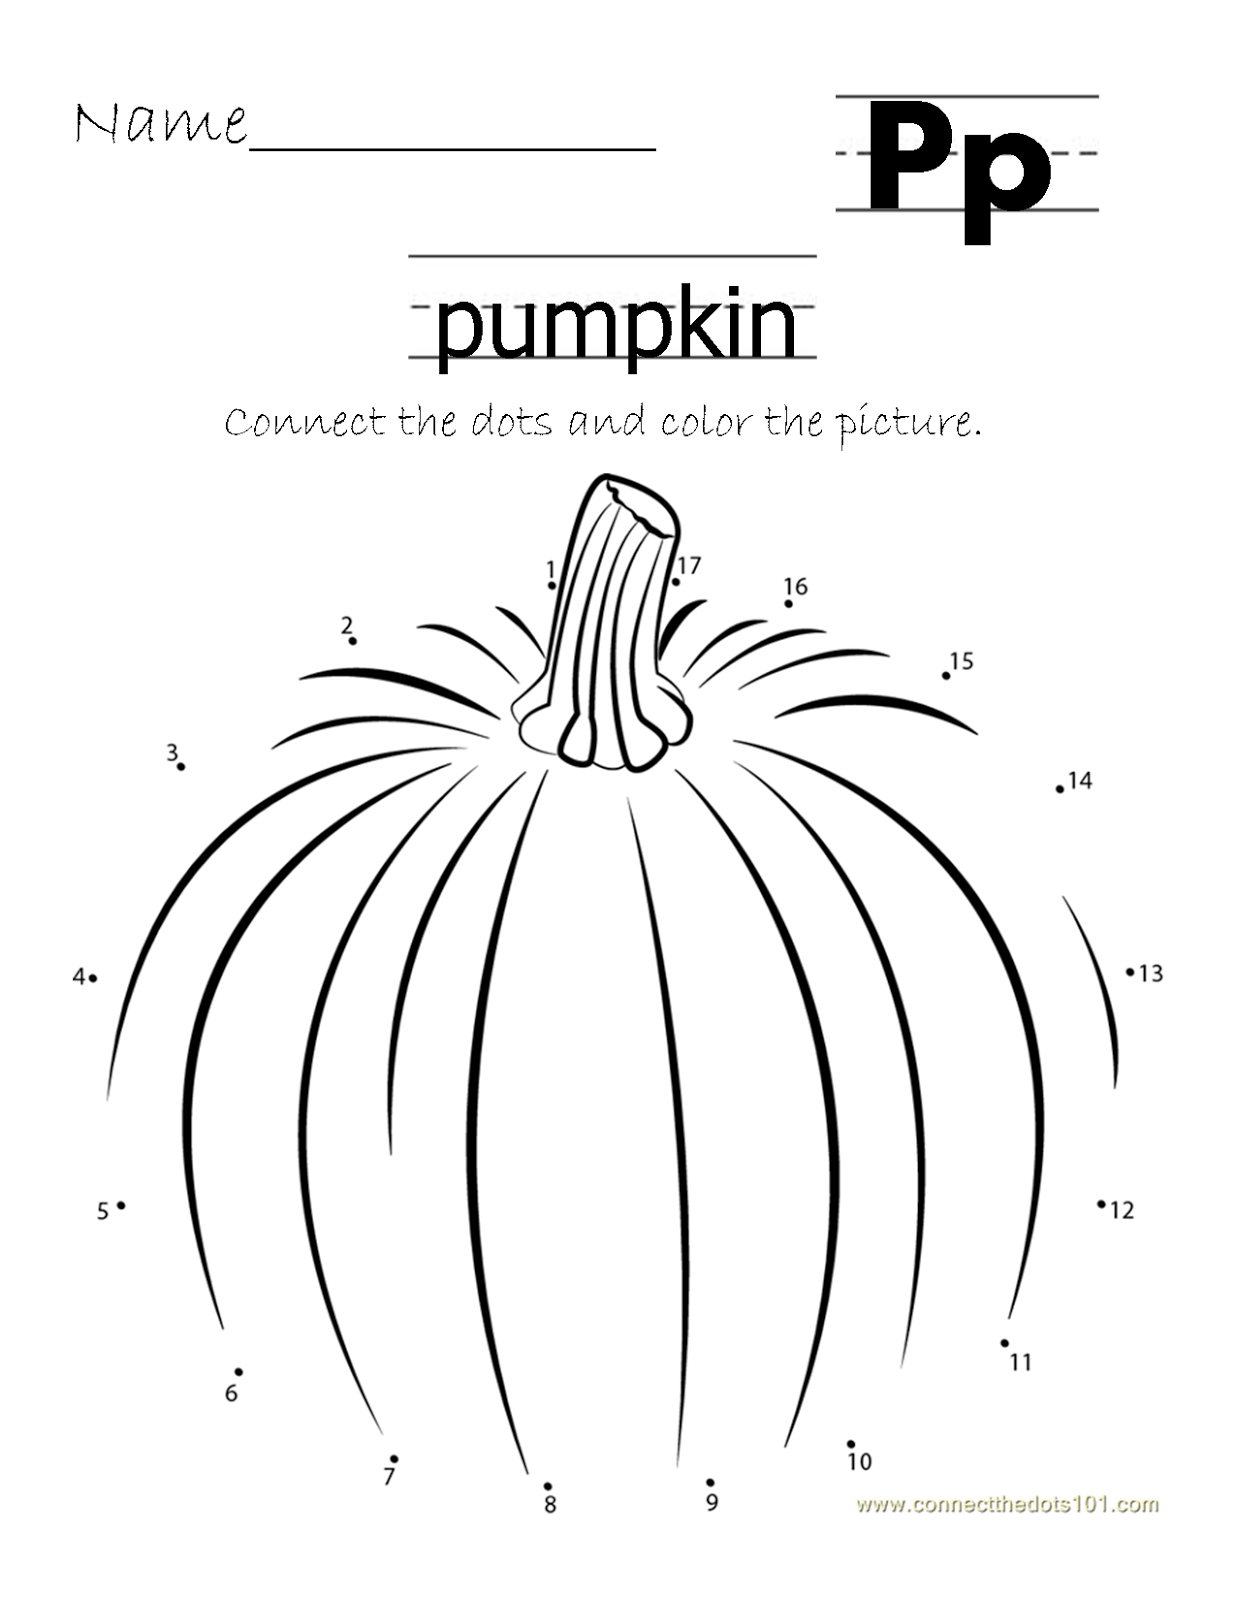 Printable Homeschool Connect The Dots Pumpkin